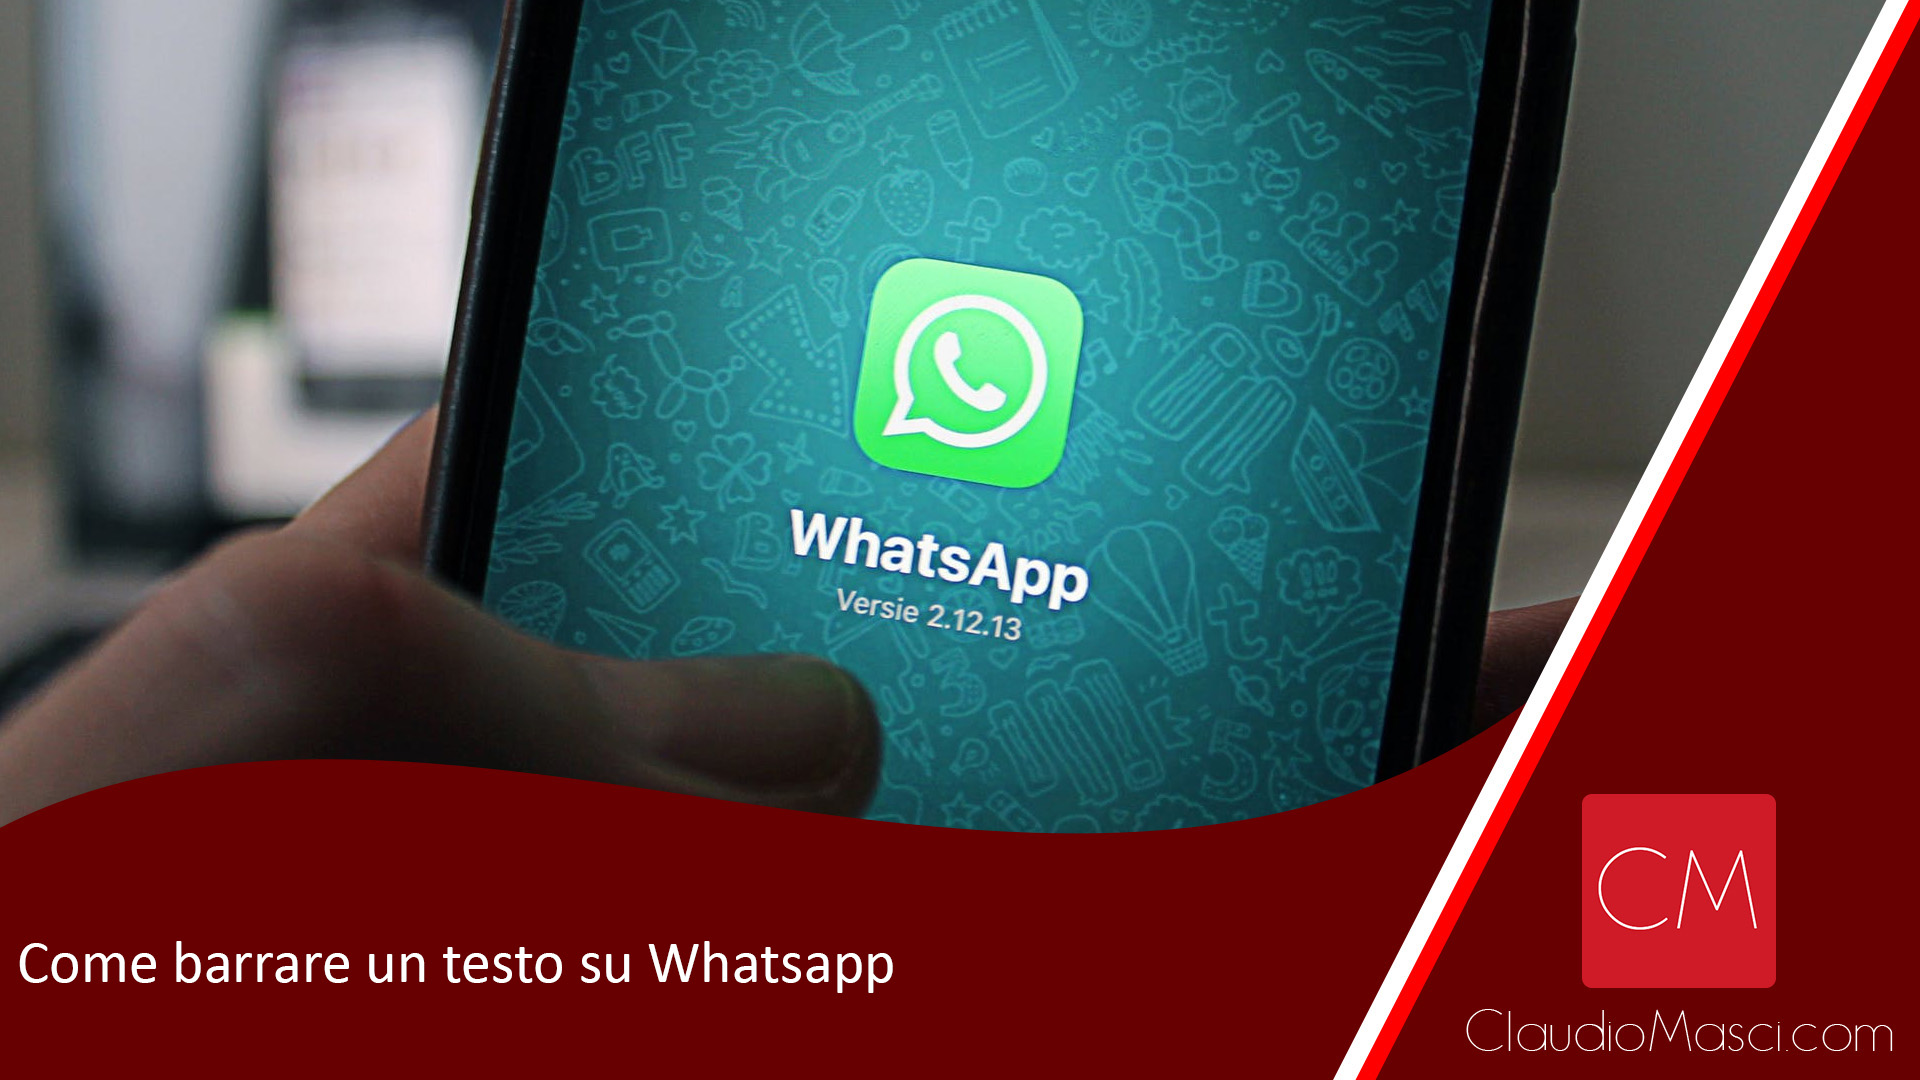 Come barrare un testo su Whatsapp